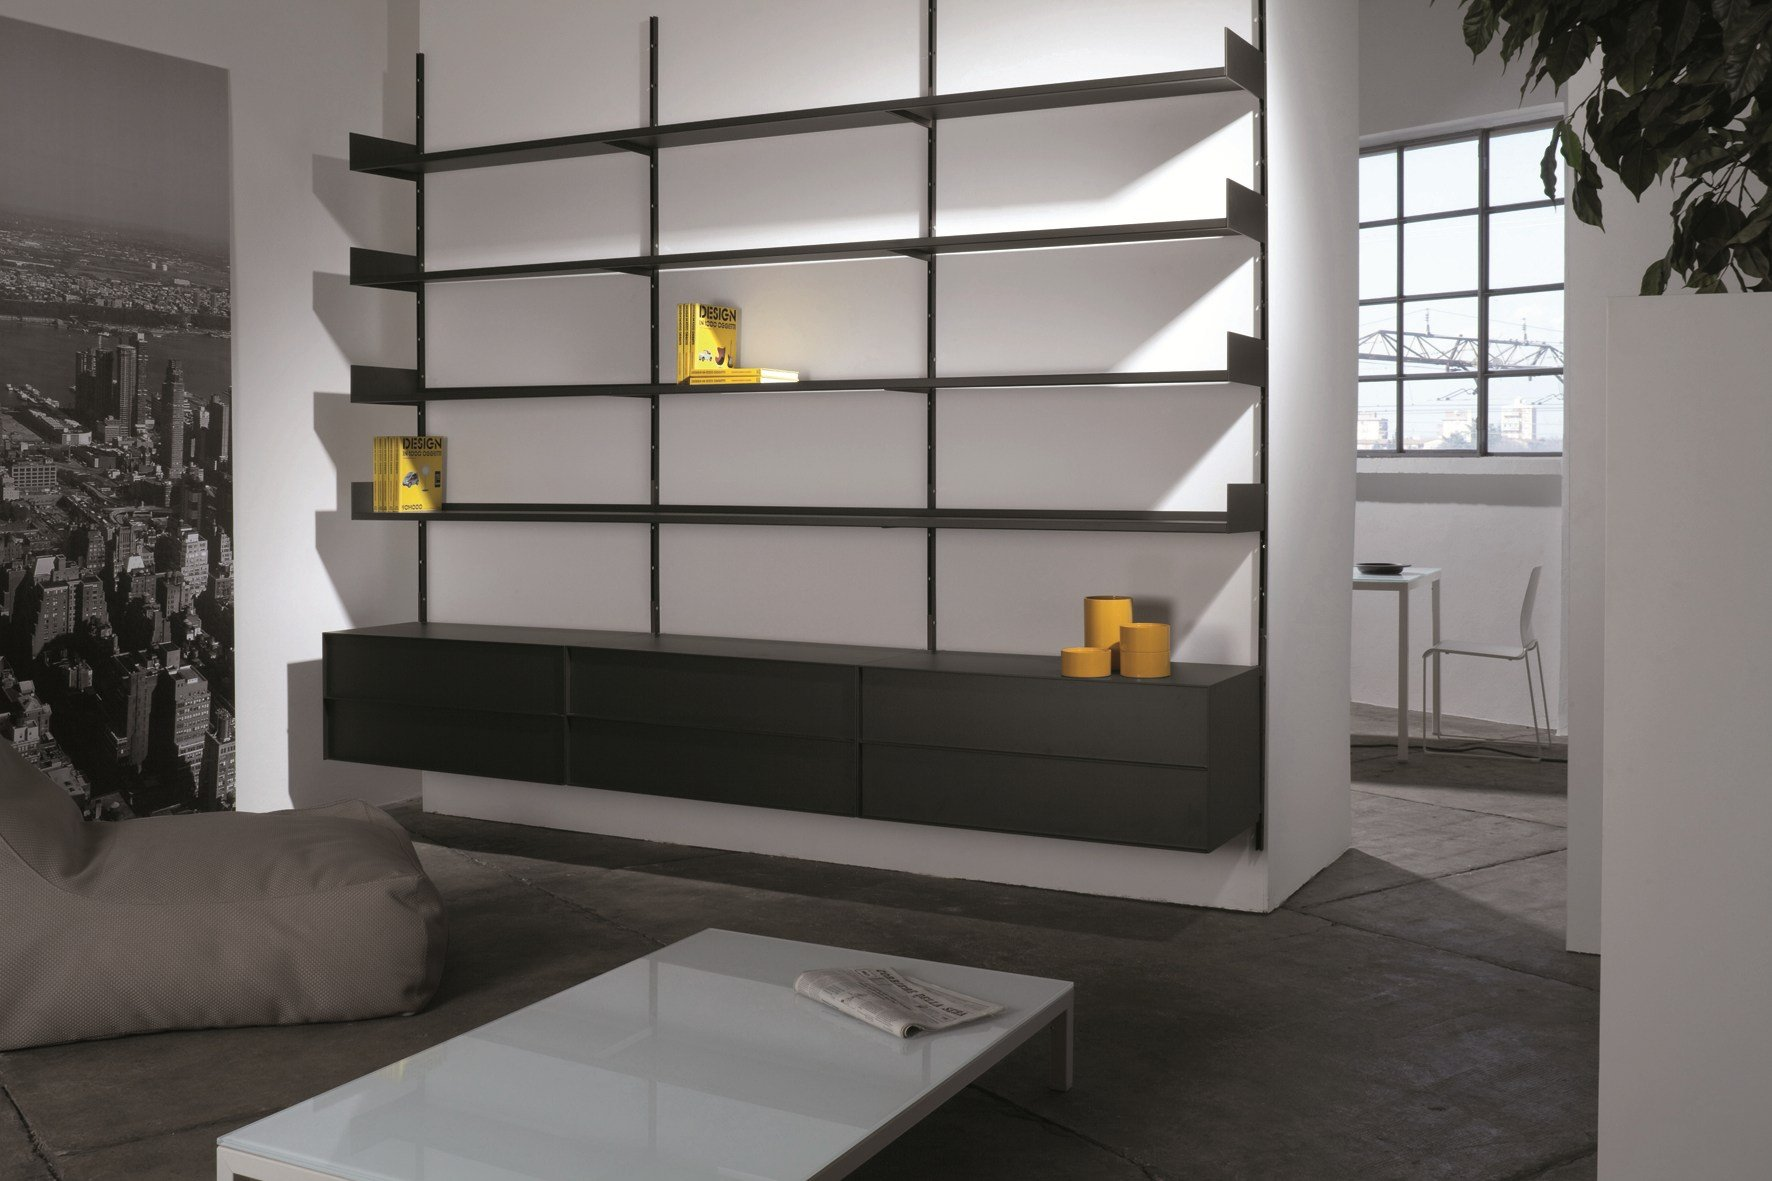 biblioth que m tal laqu elle system by ydf design basaglia rota nodari. Black Bedroom Furniture Sets. Home Design Ideas